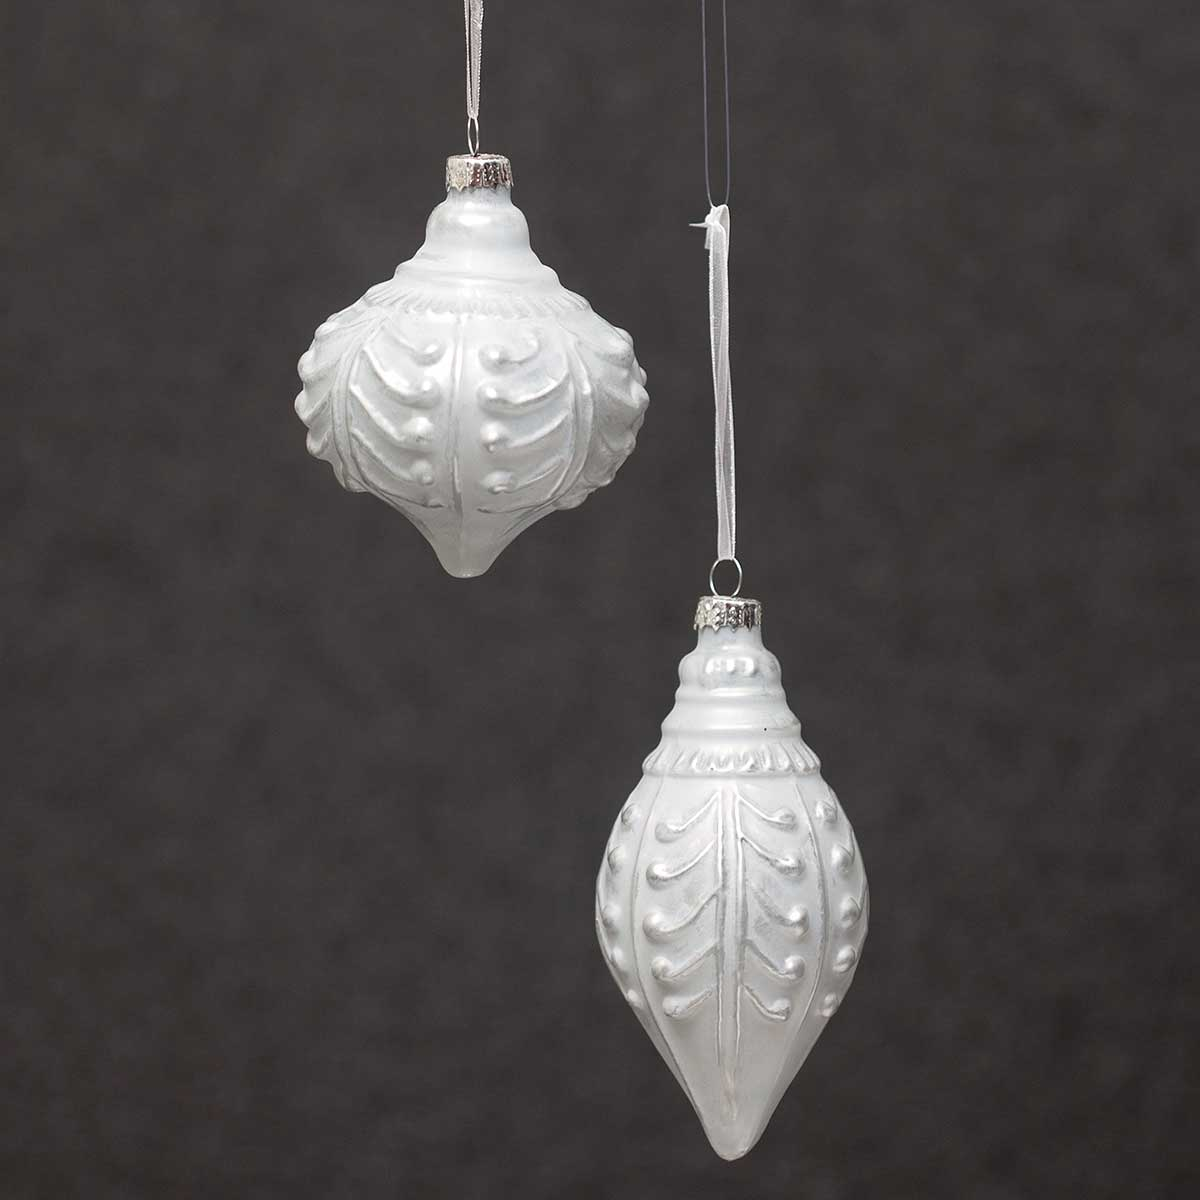 SILVER WASH GLASS ORNAMENT